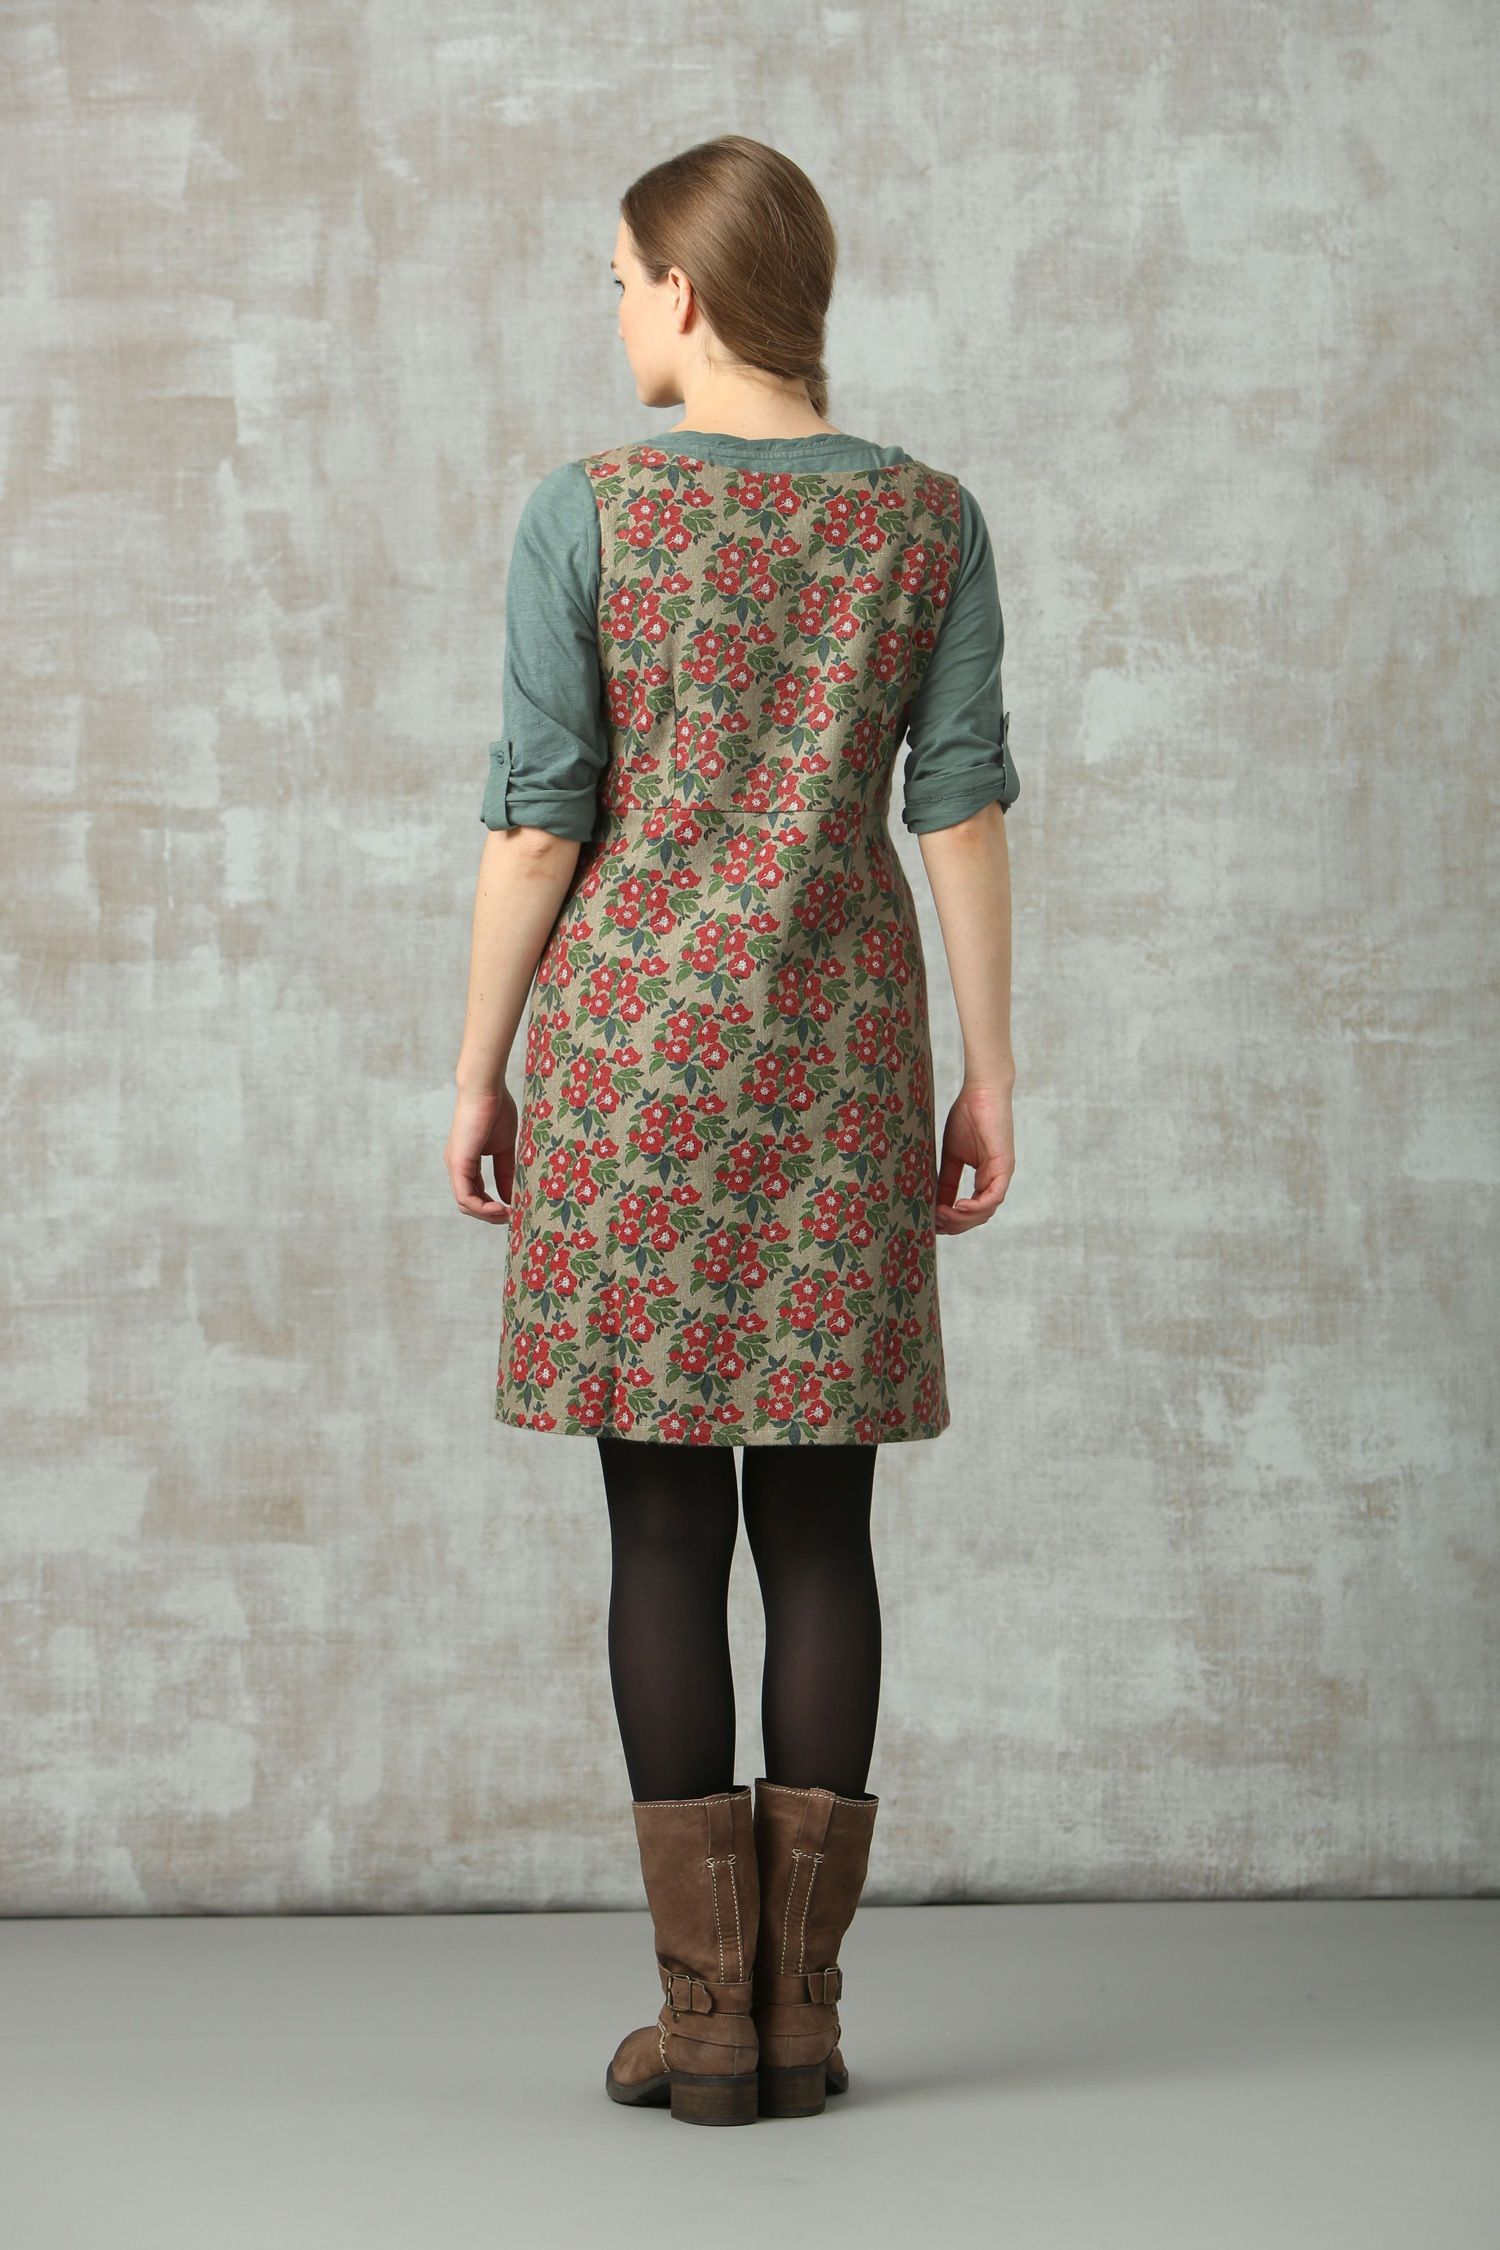 Shift dress + tights + mid-calf boots | Outfit u0026 Style ...